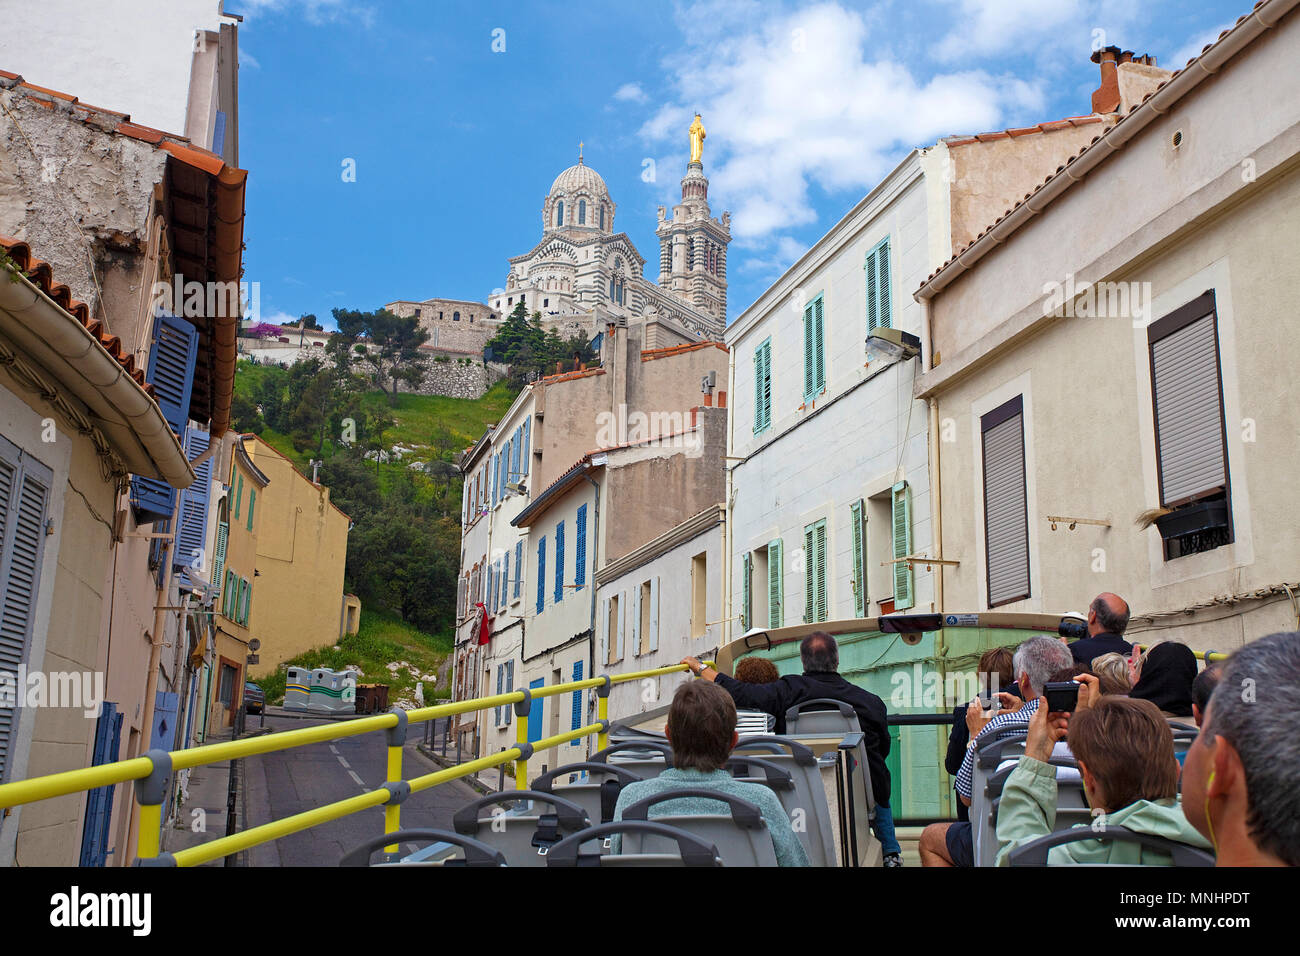 City tour, tourist bus on the way to Cathedral of Notre-Dame de la Garde, Marseille, Bouches-du-Rhone, South France, France, Europe - Stock Image